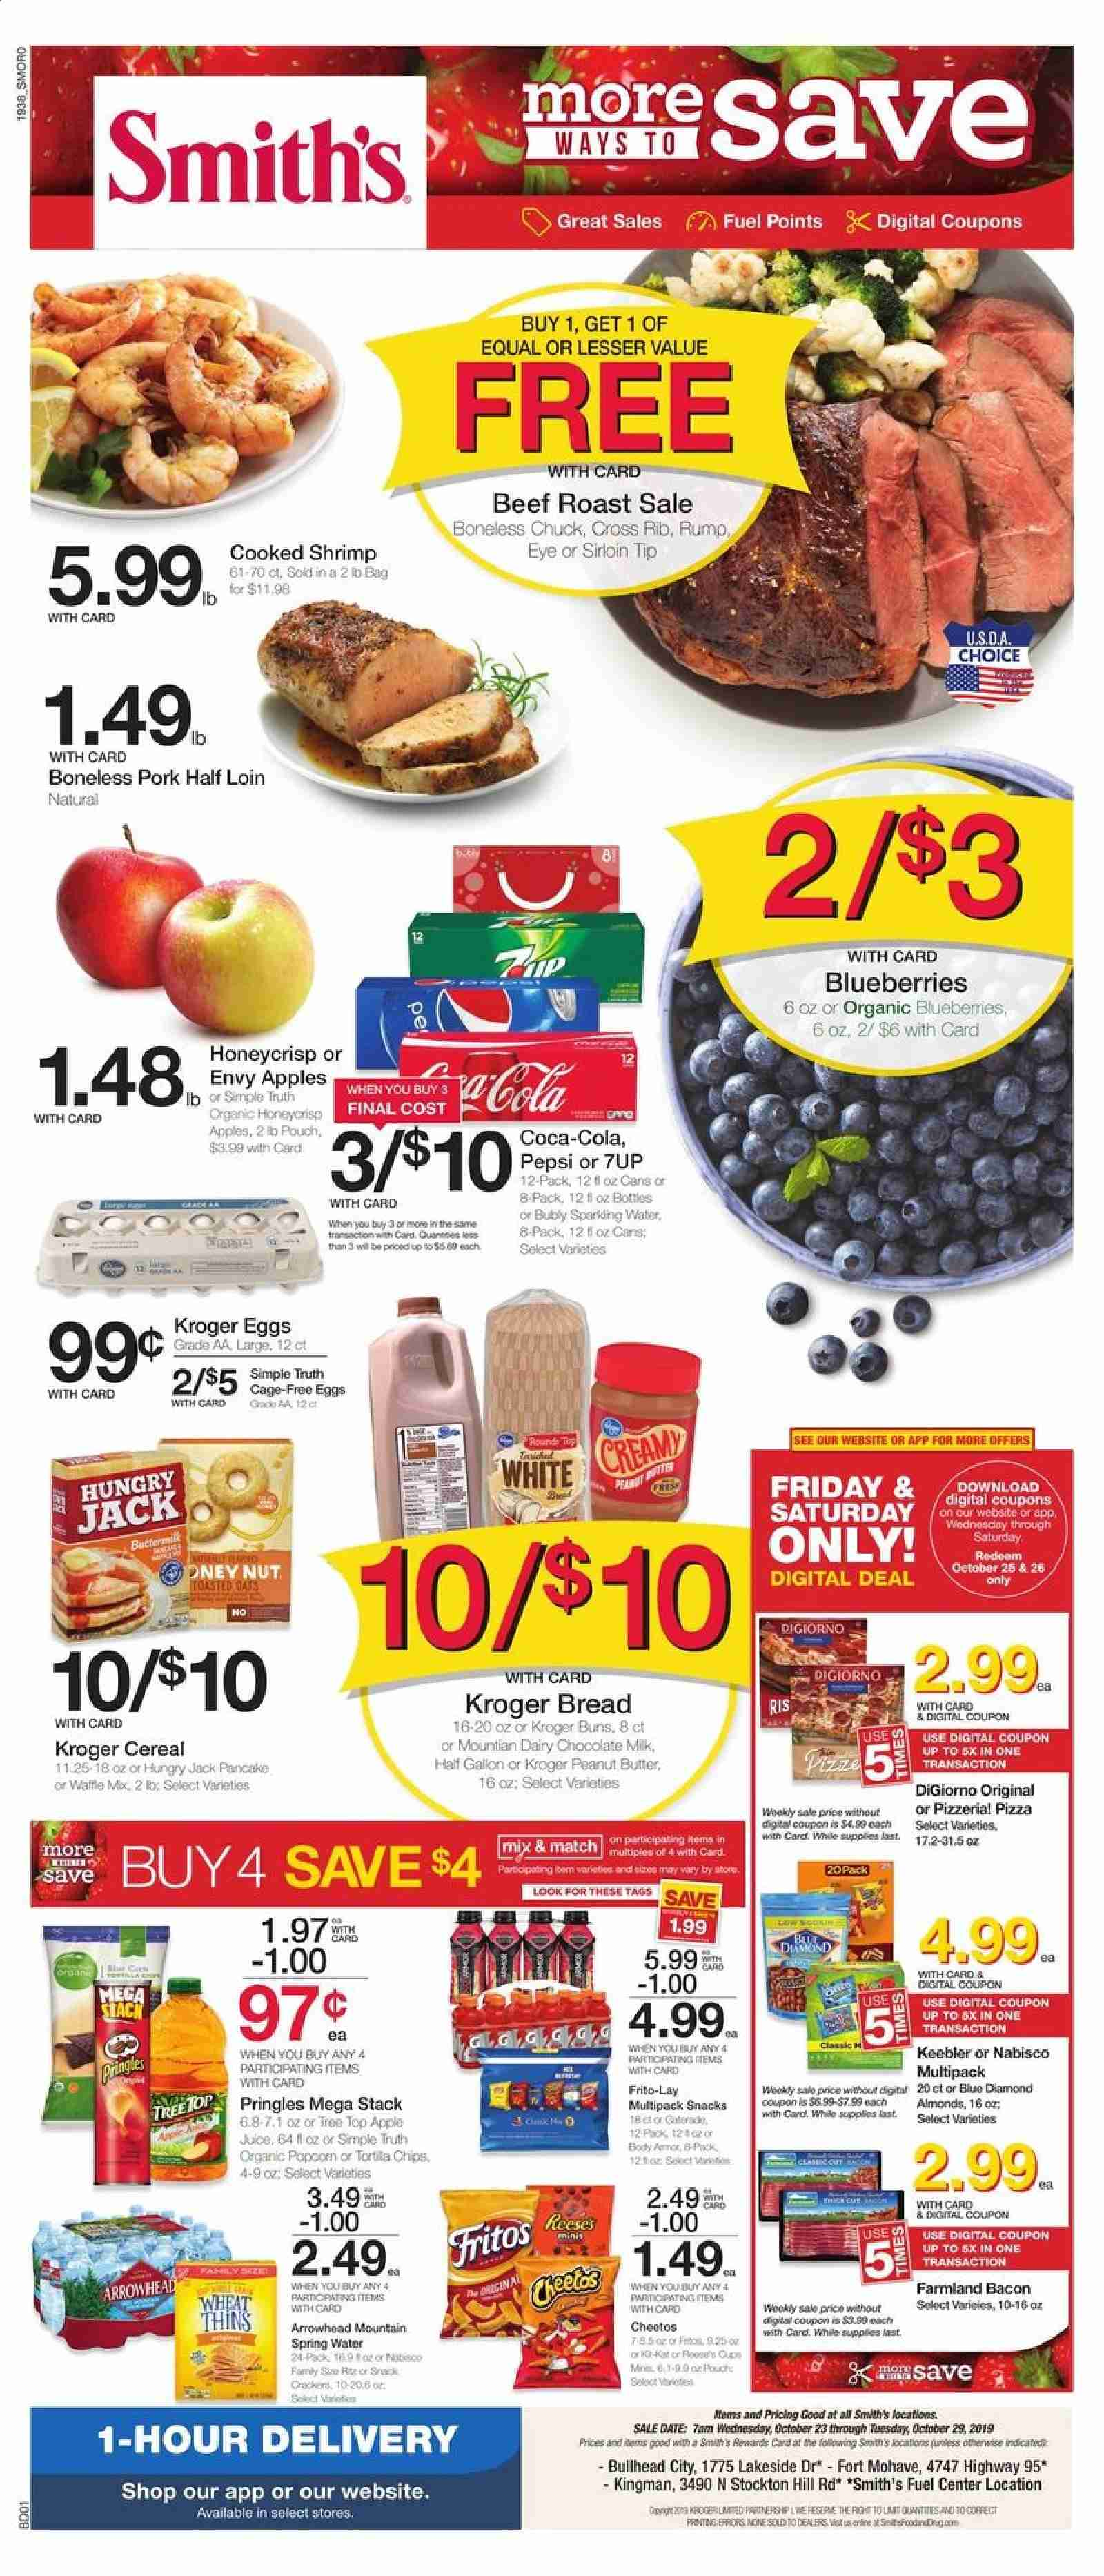 Smith's Flyer  - 10.23.2019 - 10.29.2019. Page 1.